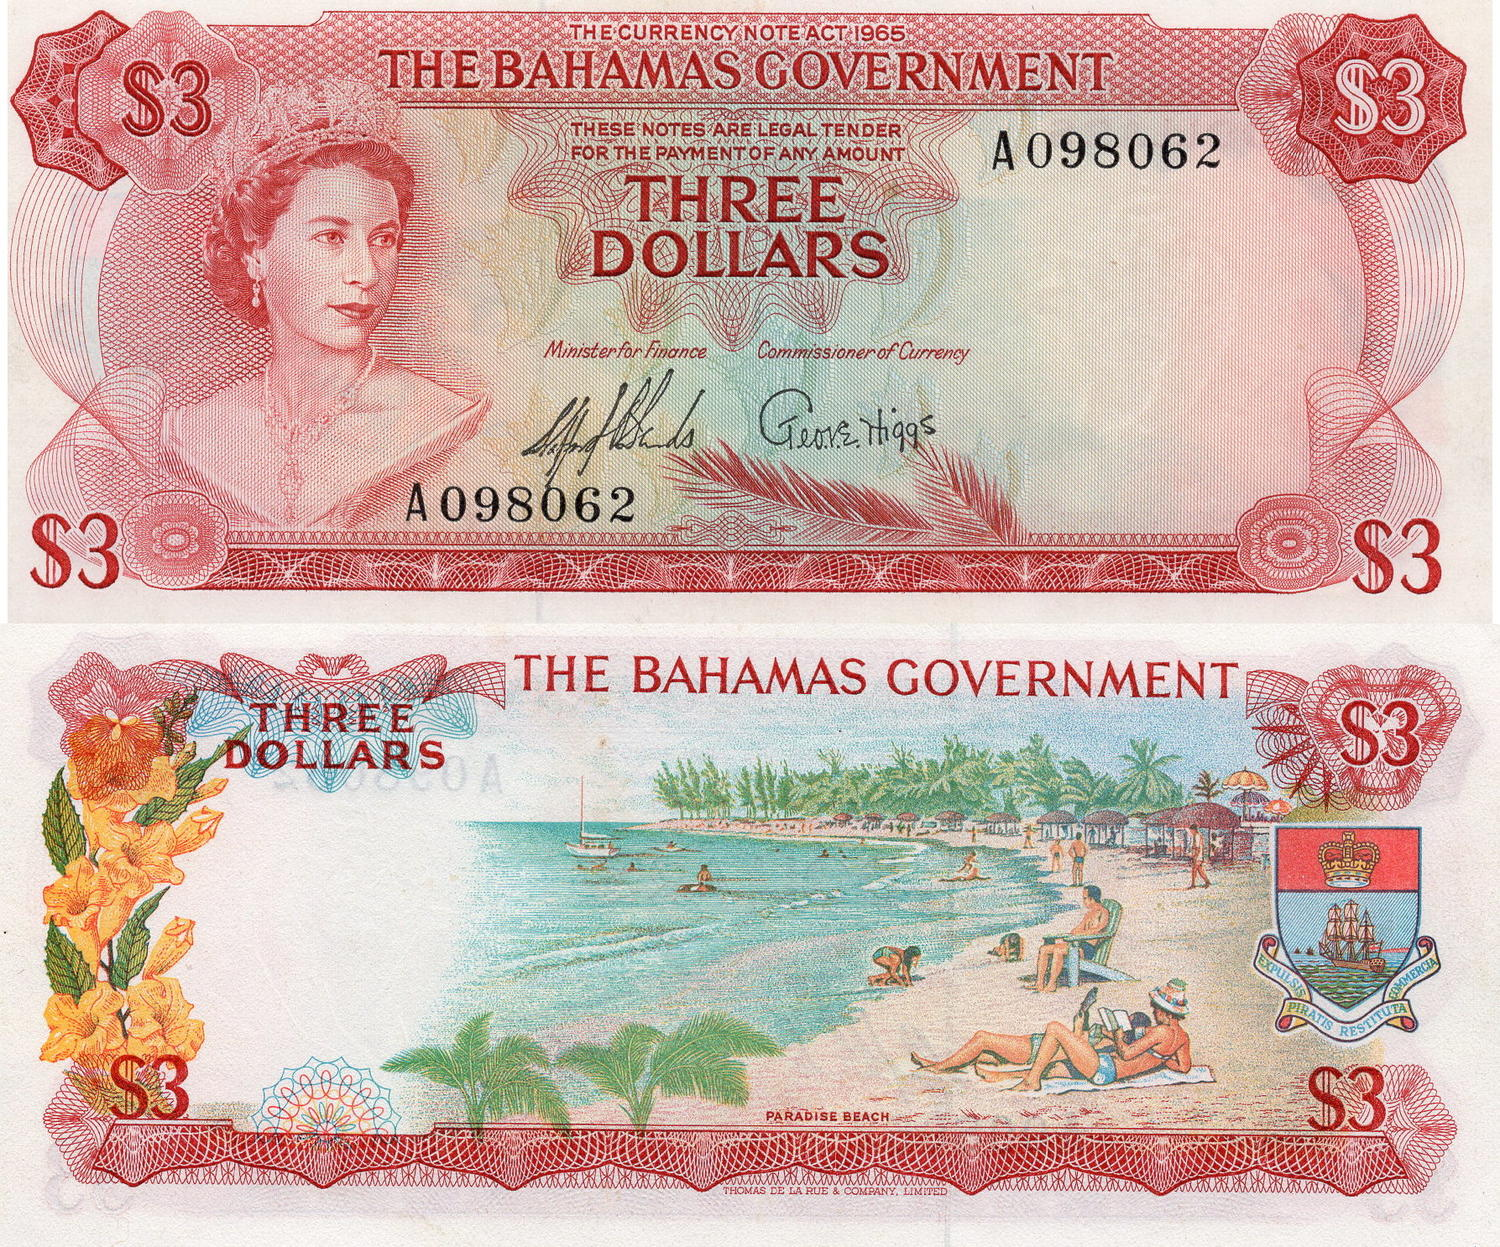 Bahamian Currency To Usd Exchange Rates